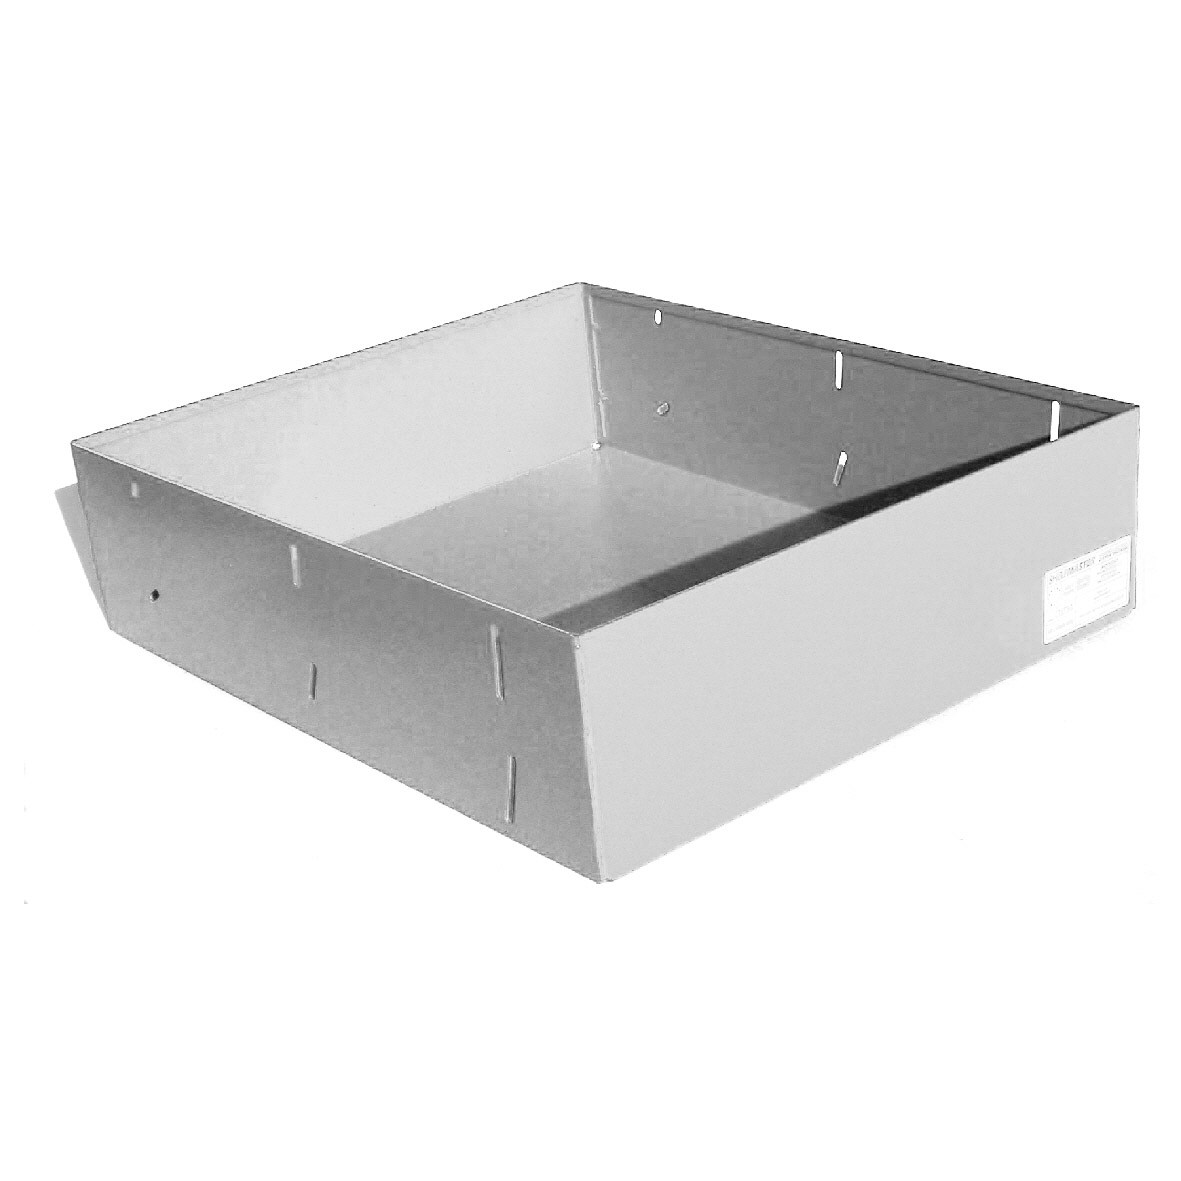 ShelfMaster Box Shelf 150mm x 480mm x 500mm | SMBS500/150